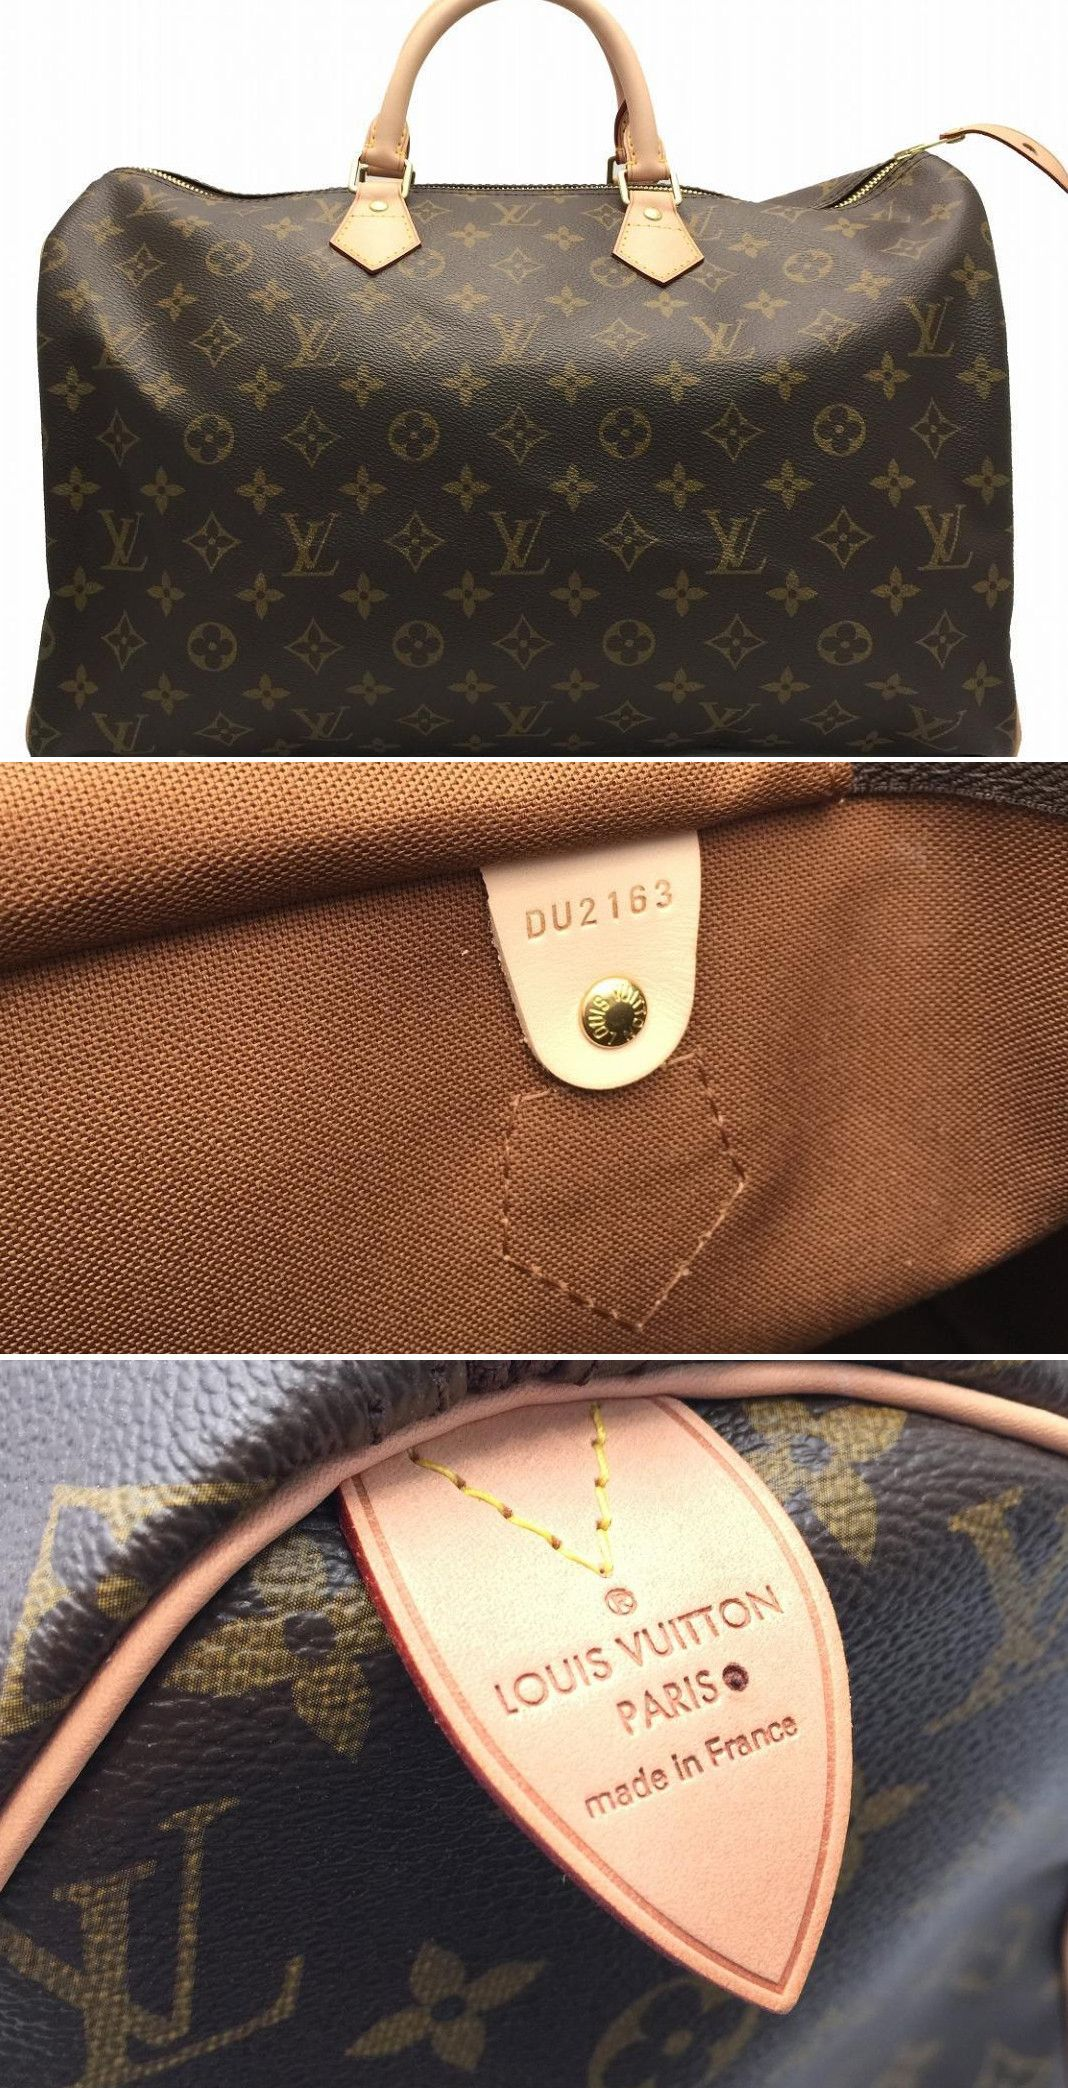 Are you good at authenticating bags? Find out just how ...